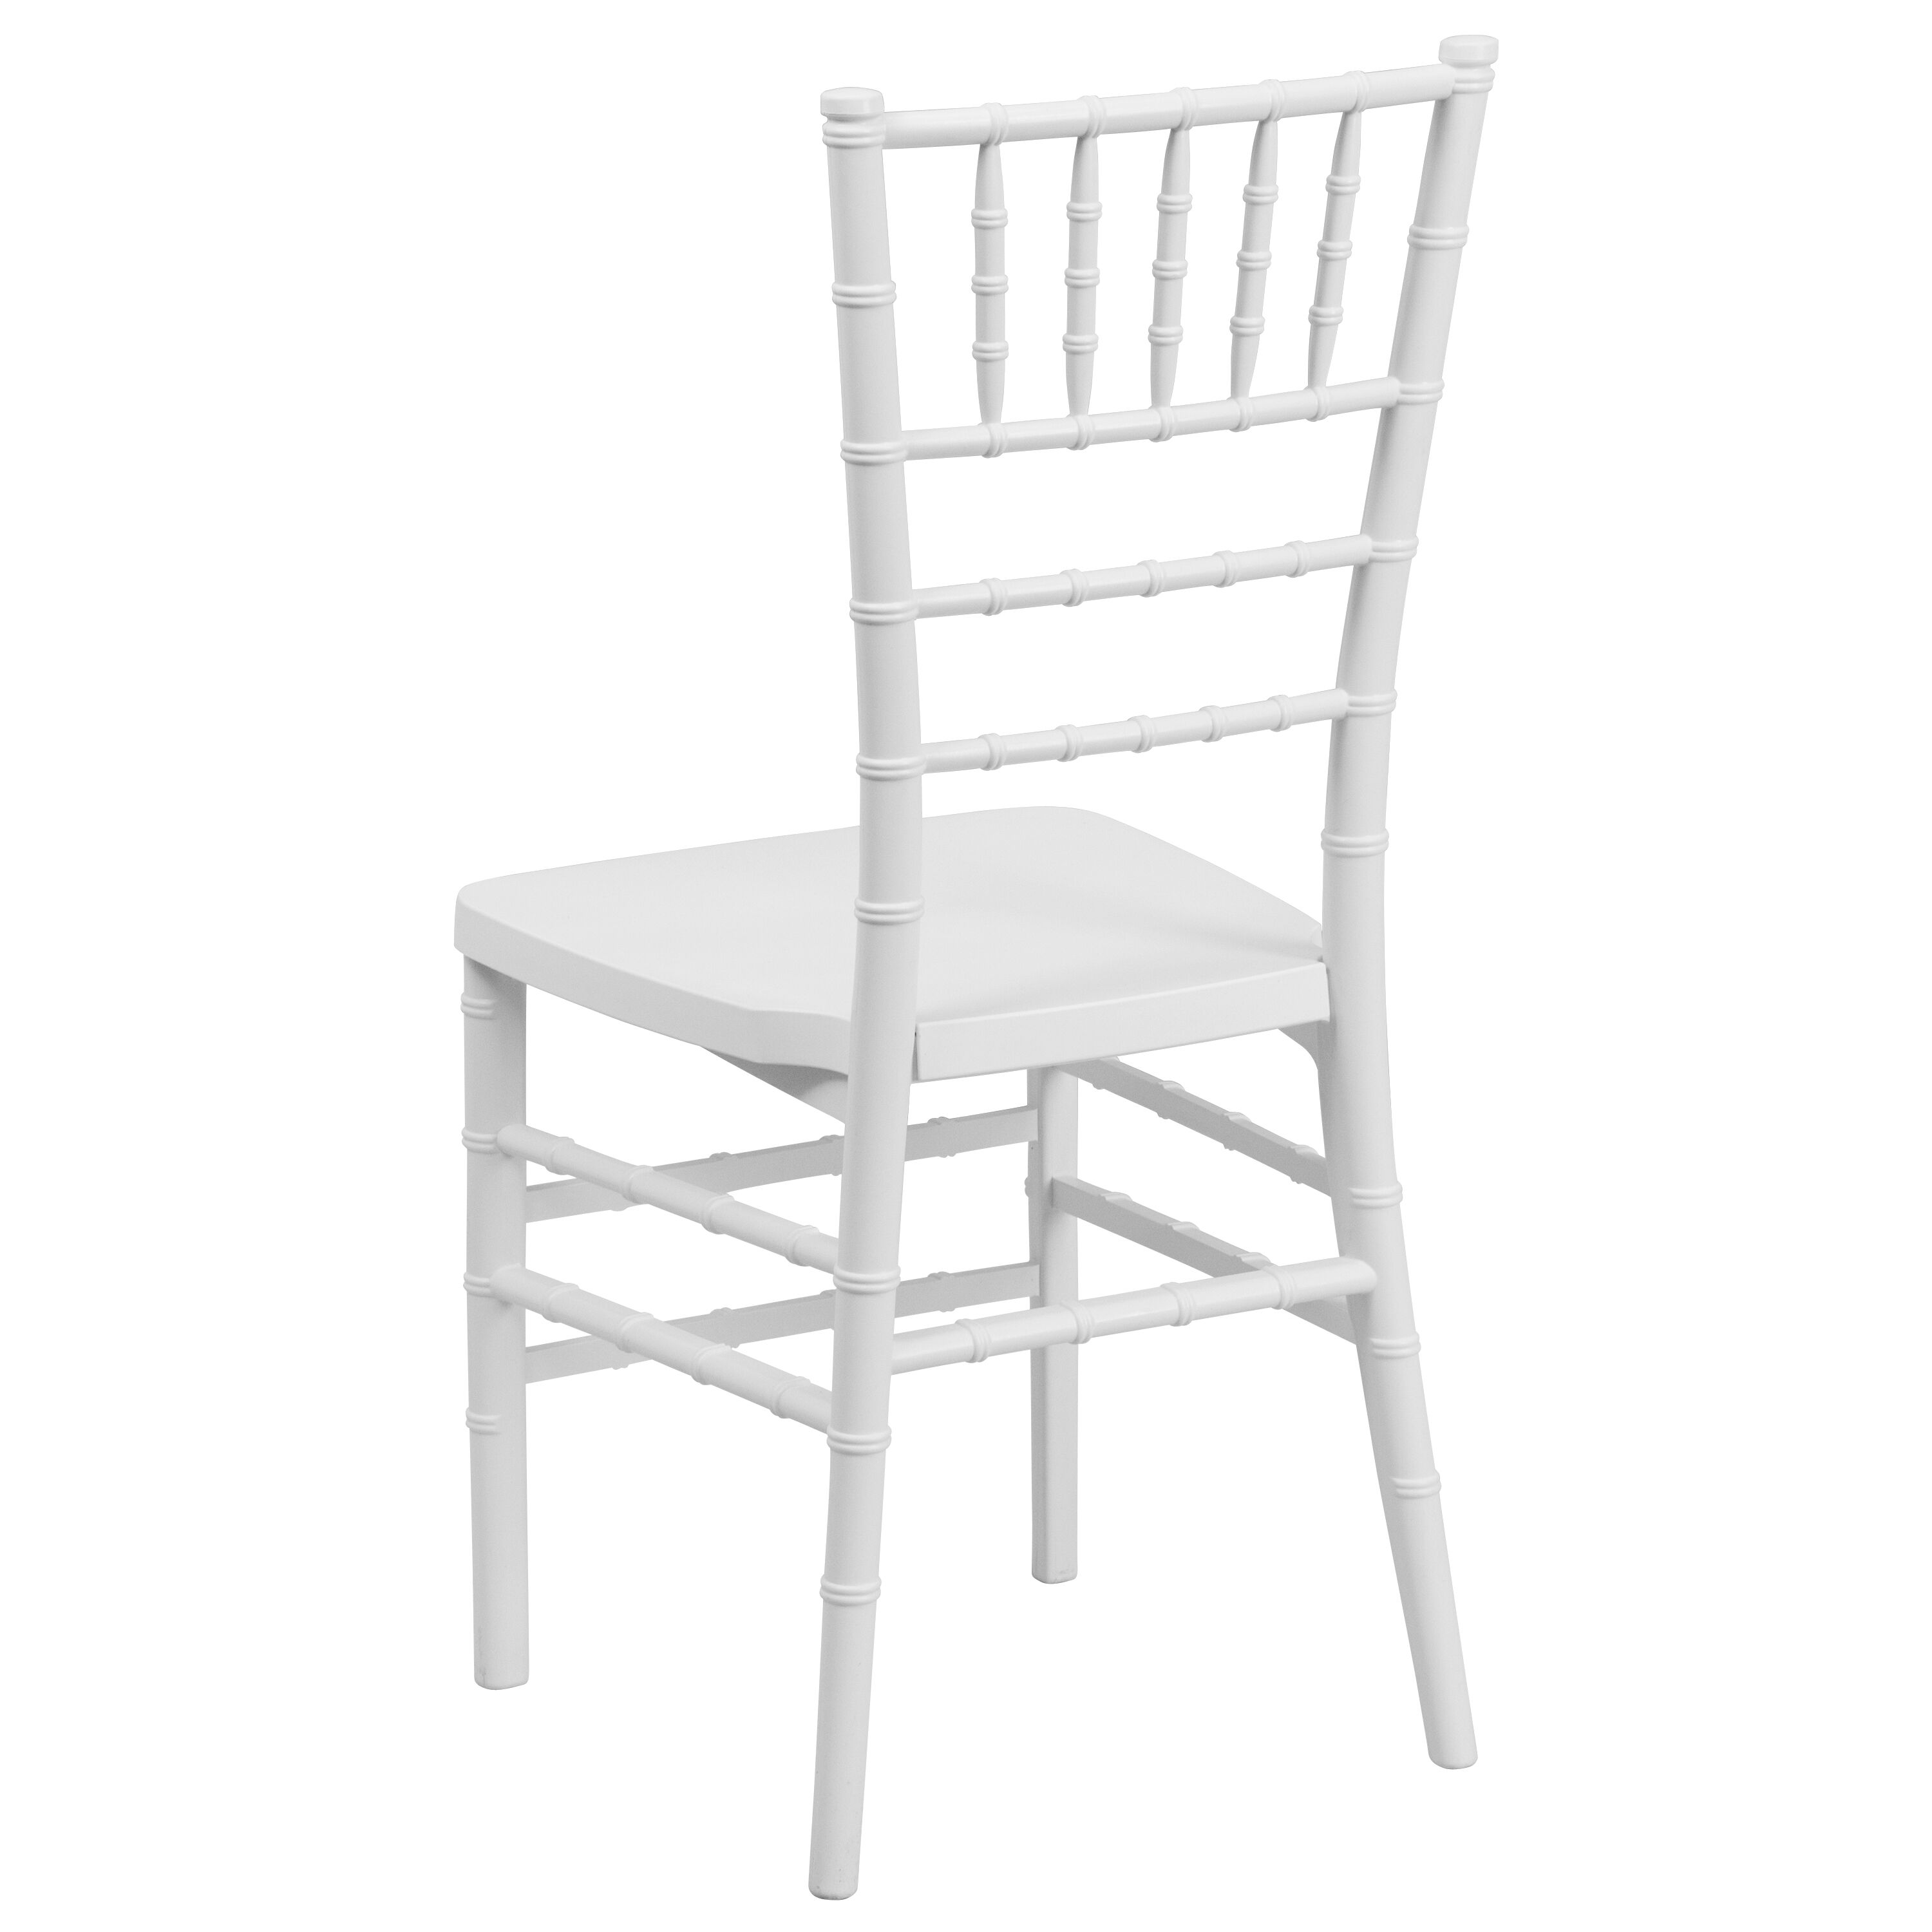 stacking resin chairs theodore alexander white chiavari chair le gg